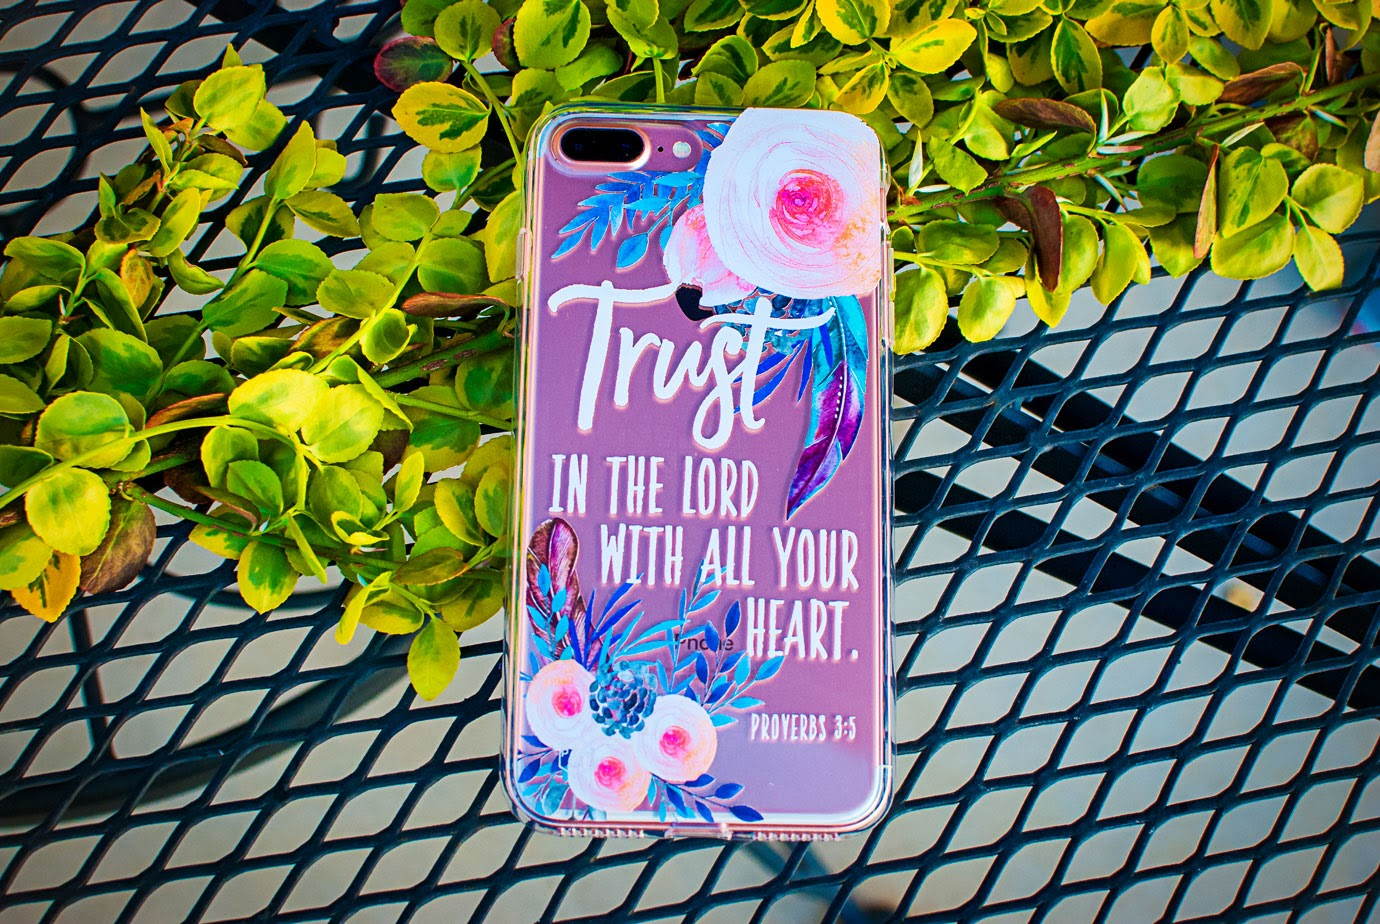 Encouraging Quotes on a Phone Case from Prone To Wander